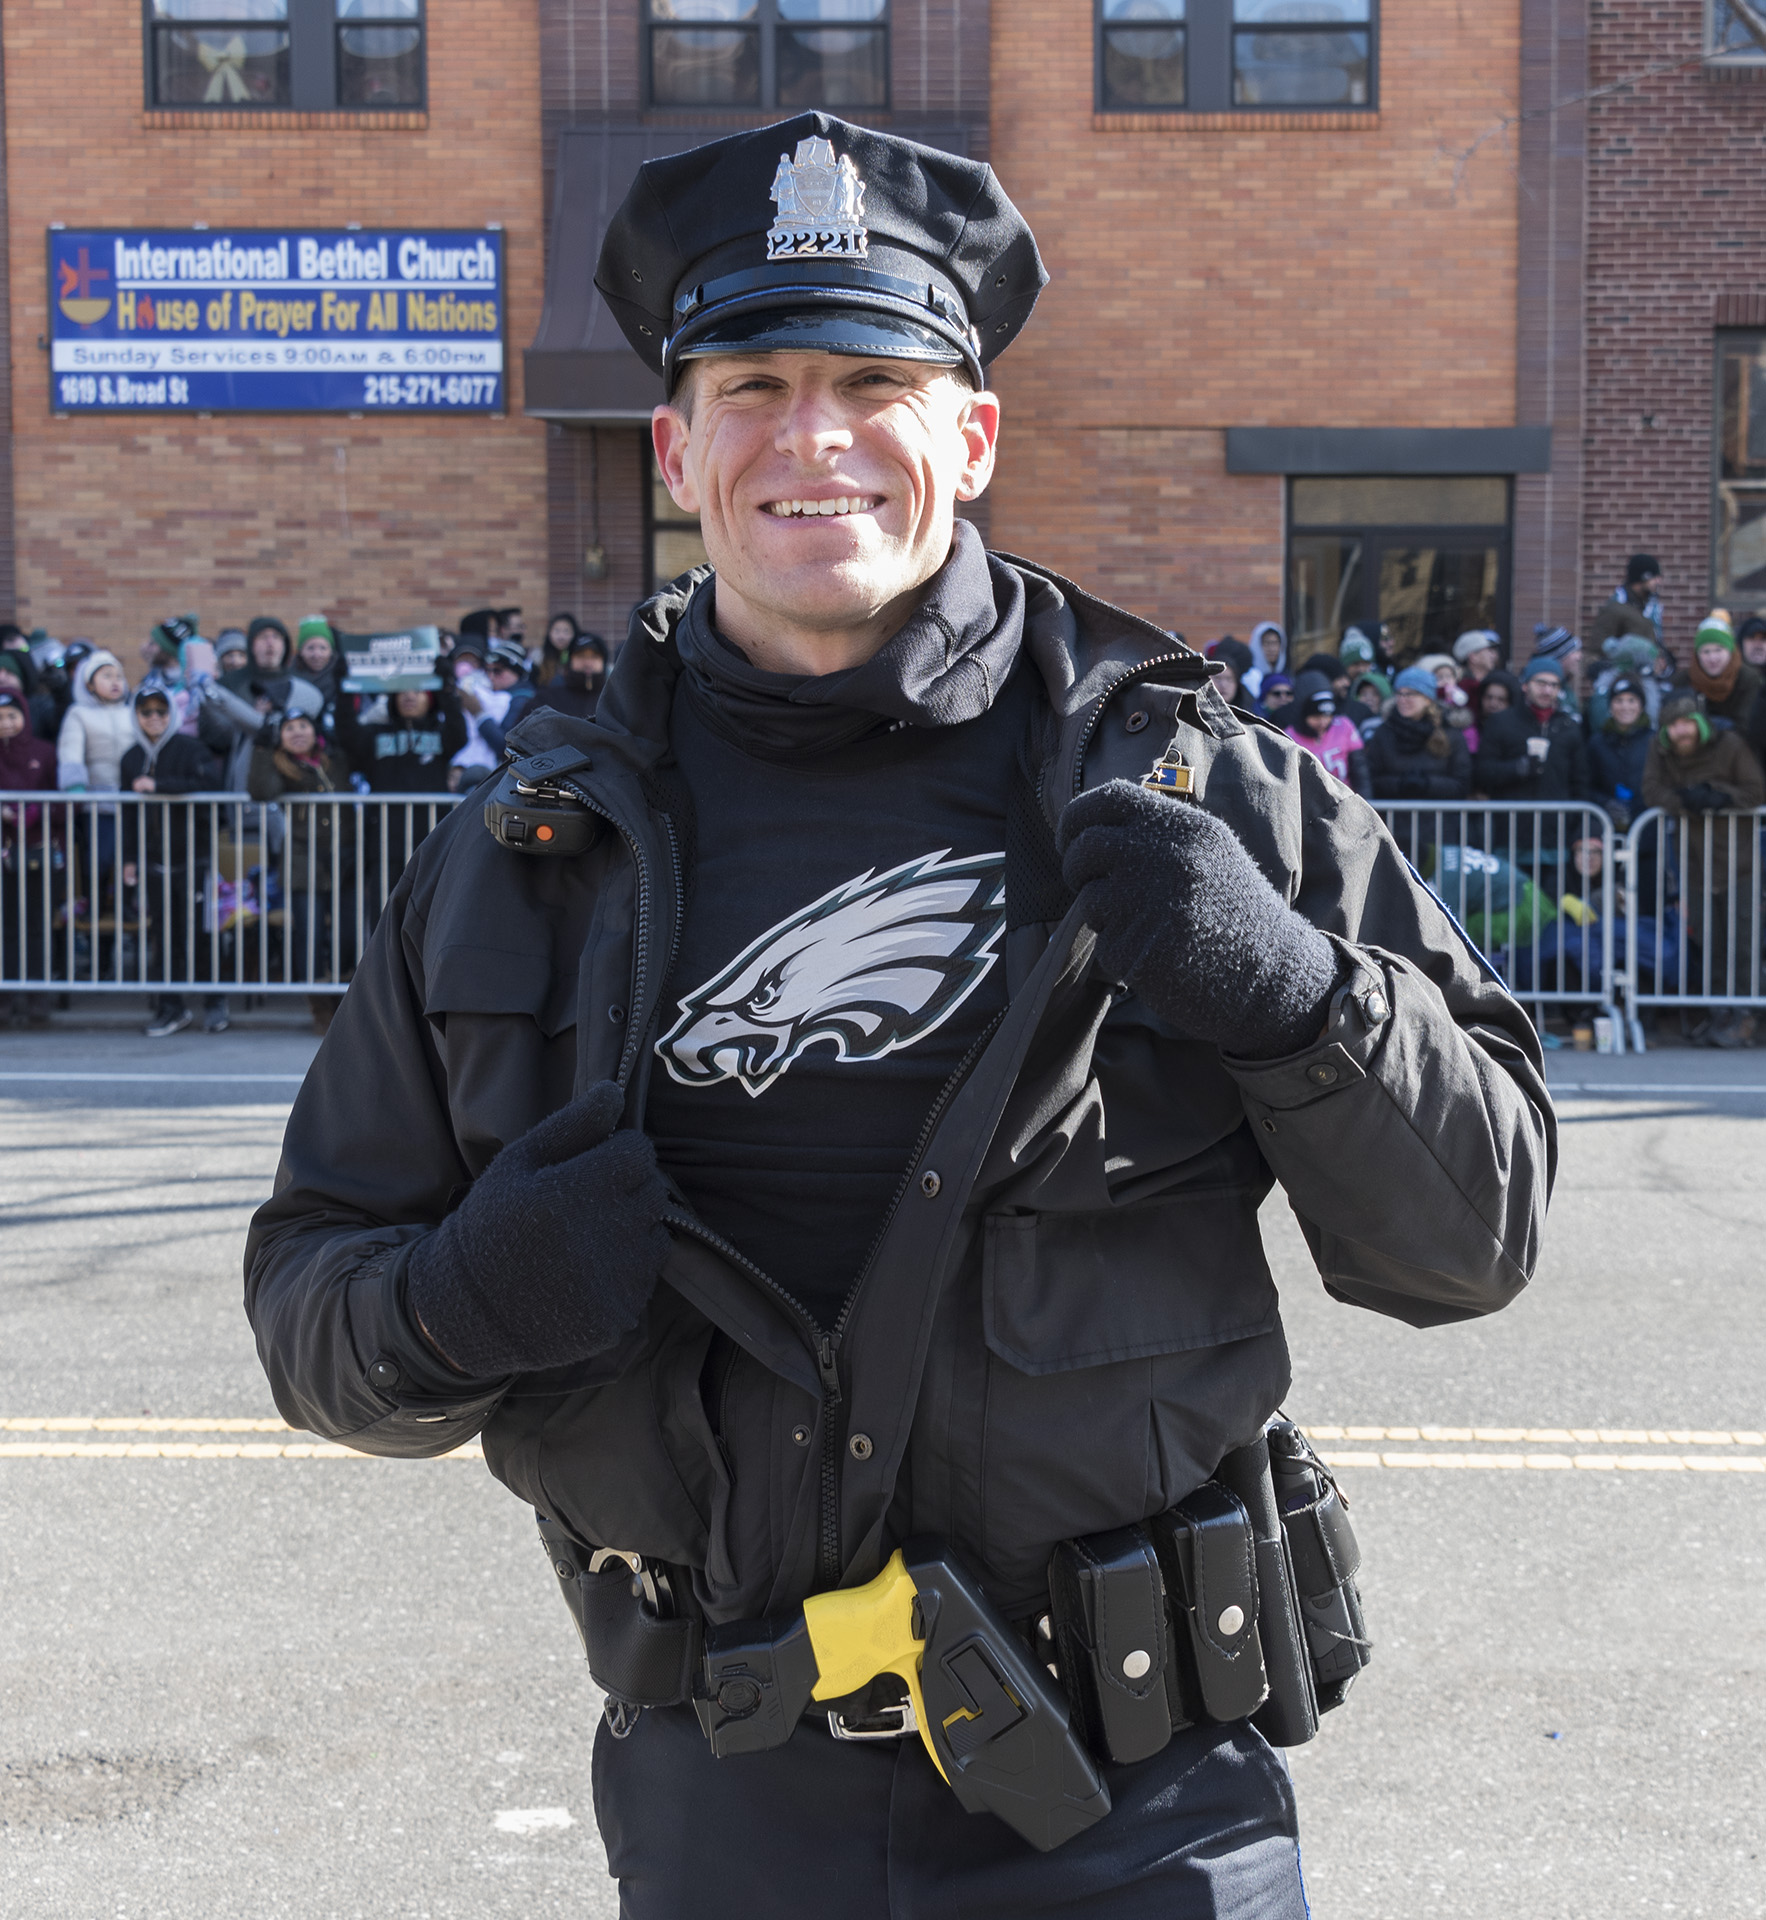 "<div class=""meta image-caption""><div class=""origin-logo origin-image wpvi""><span>WPVI</span></div><span class=""caption-text"">Along the parade route with the Eagles and 6abc Photographer Bruce Neumann (Bruce Neumann)</span></div>"